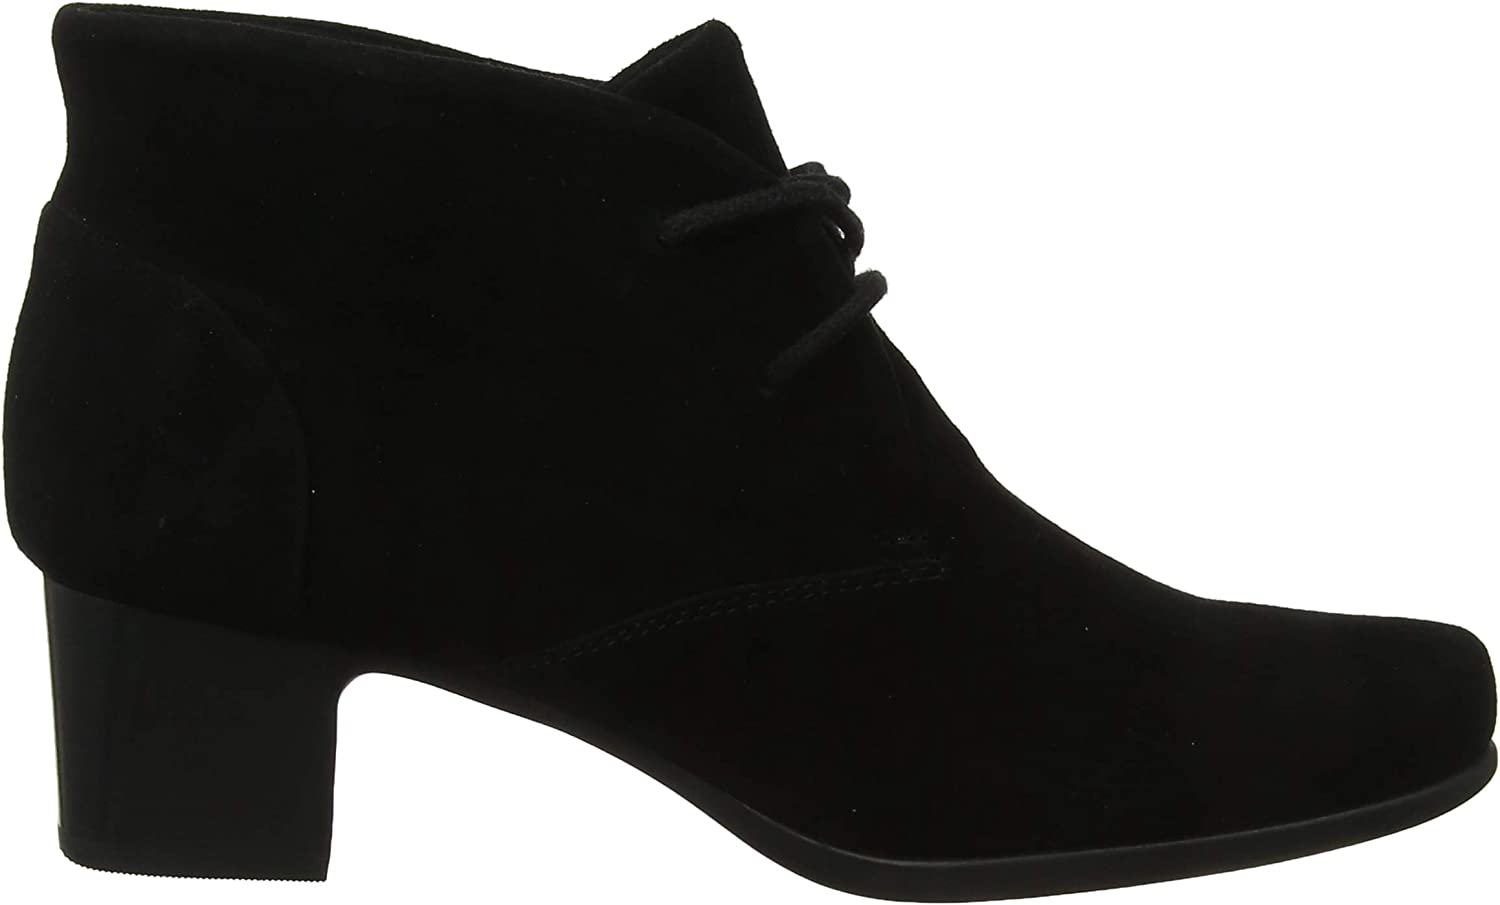 Específicamente Enfriarse interior  Clarks Women's Un Damson Tie Ankle Boots: Amazon.co.uk: Shoes & Bags